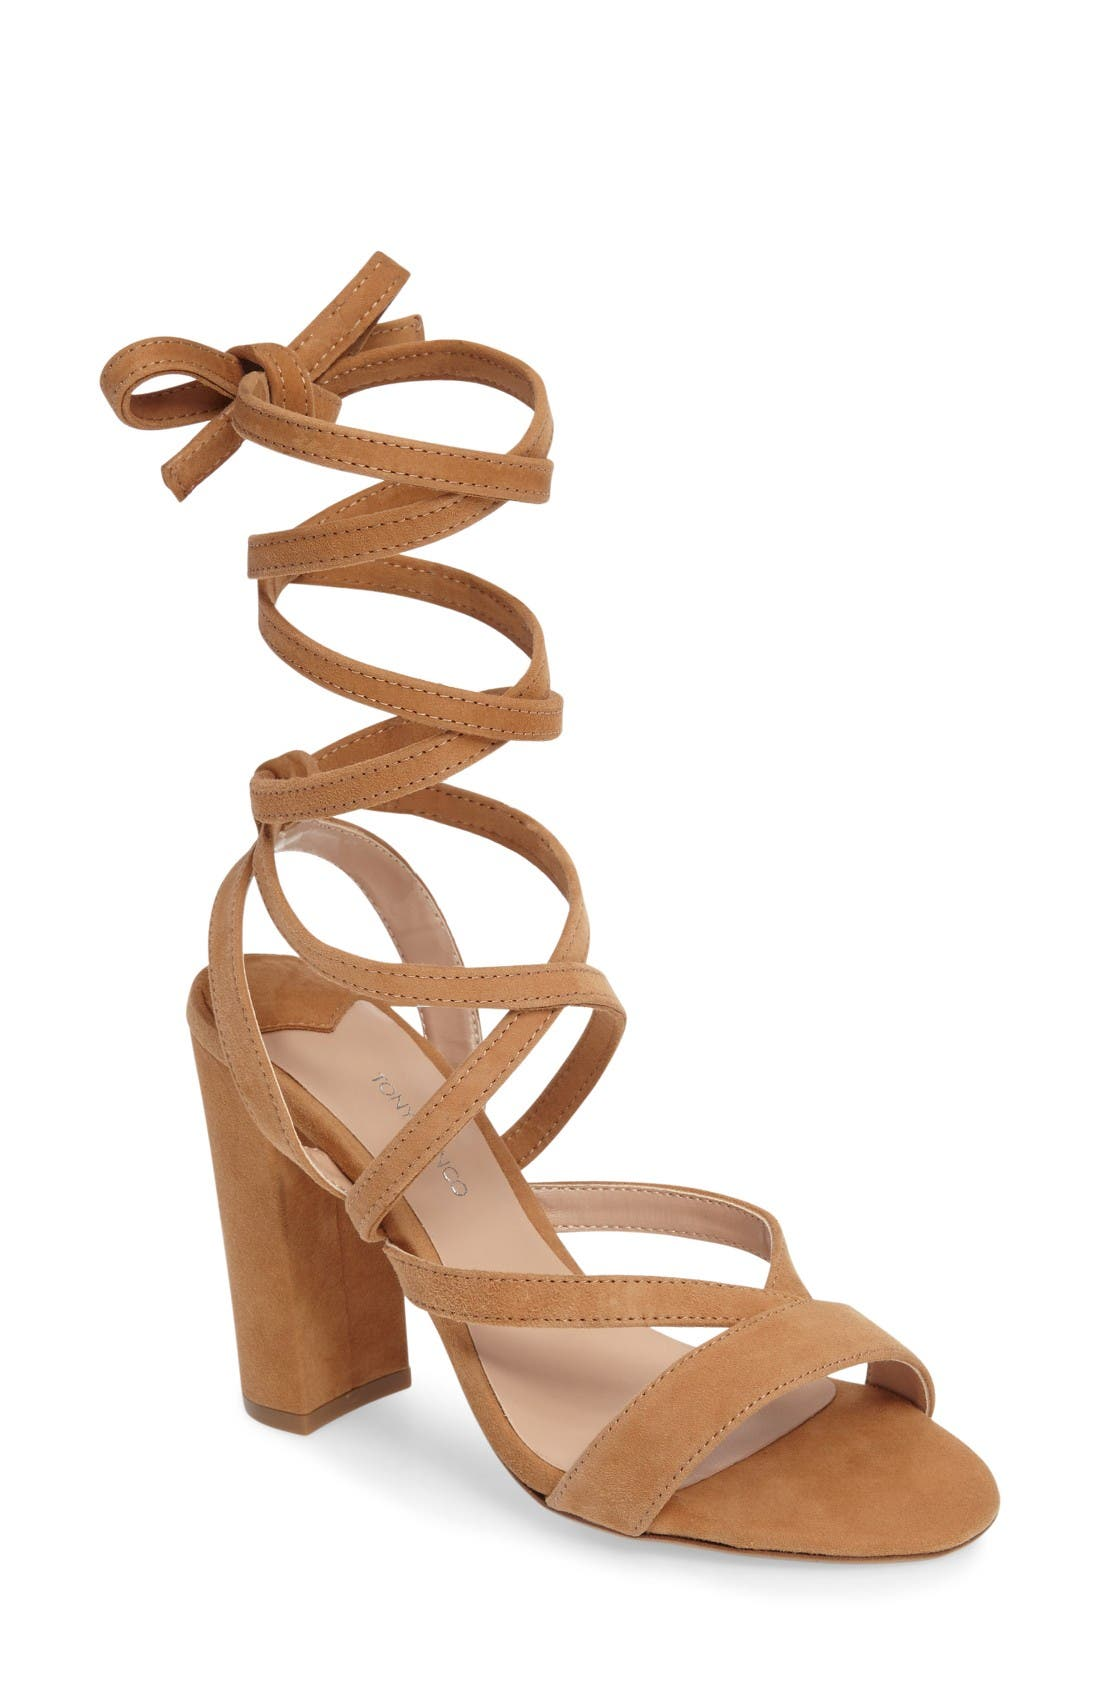 Alternate Image 1 Selected - Tony Bianco Kappa Ankle Wrap Sandal (Women)